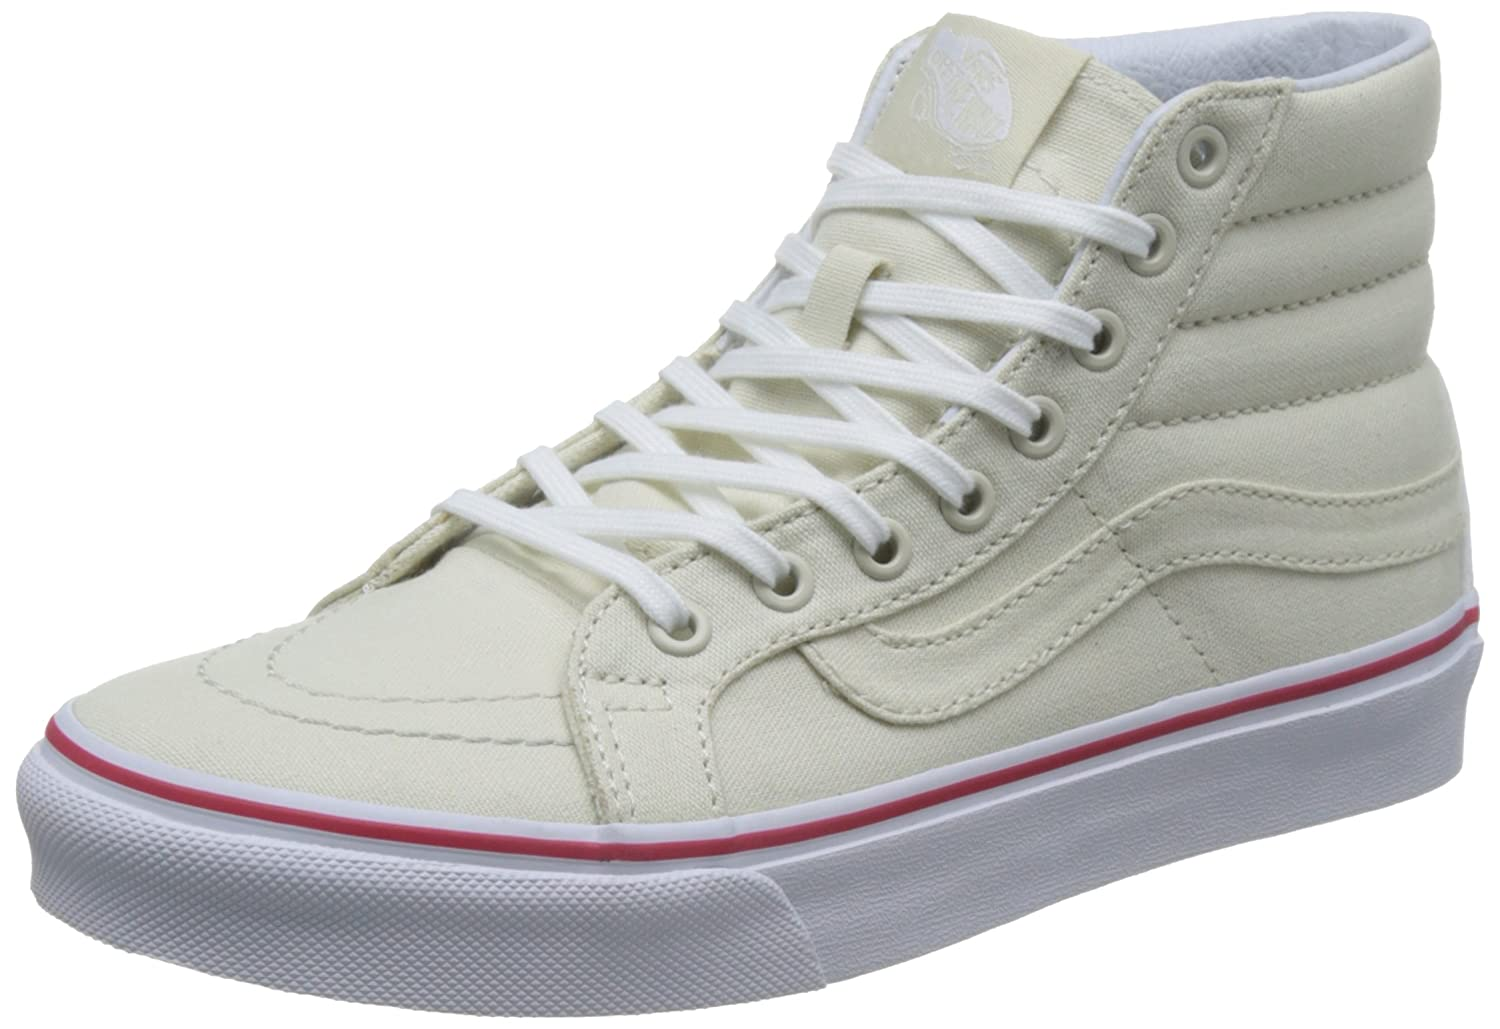 Vans Unisex Sk8-Hi Slim Women's Skate Shoe B01MTIN31D 10 M US Women / 8.5 M US Men|Bone/True White